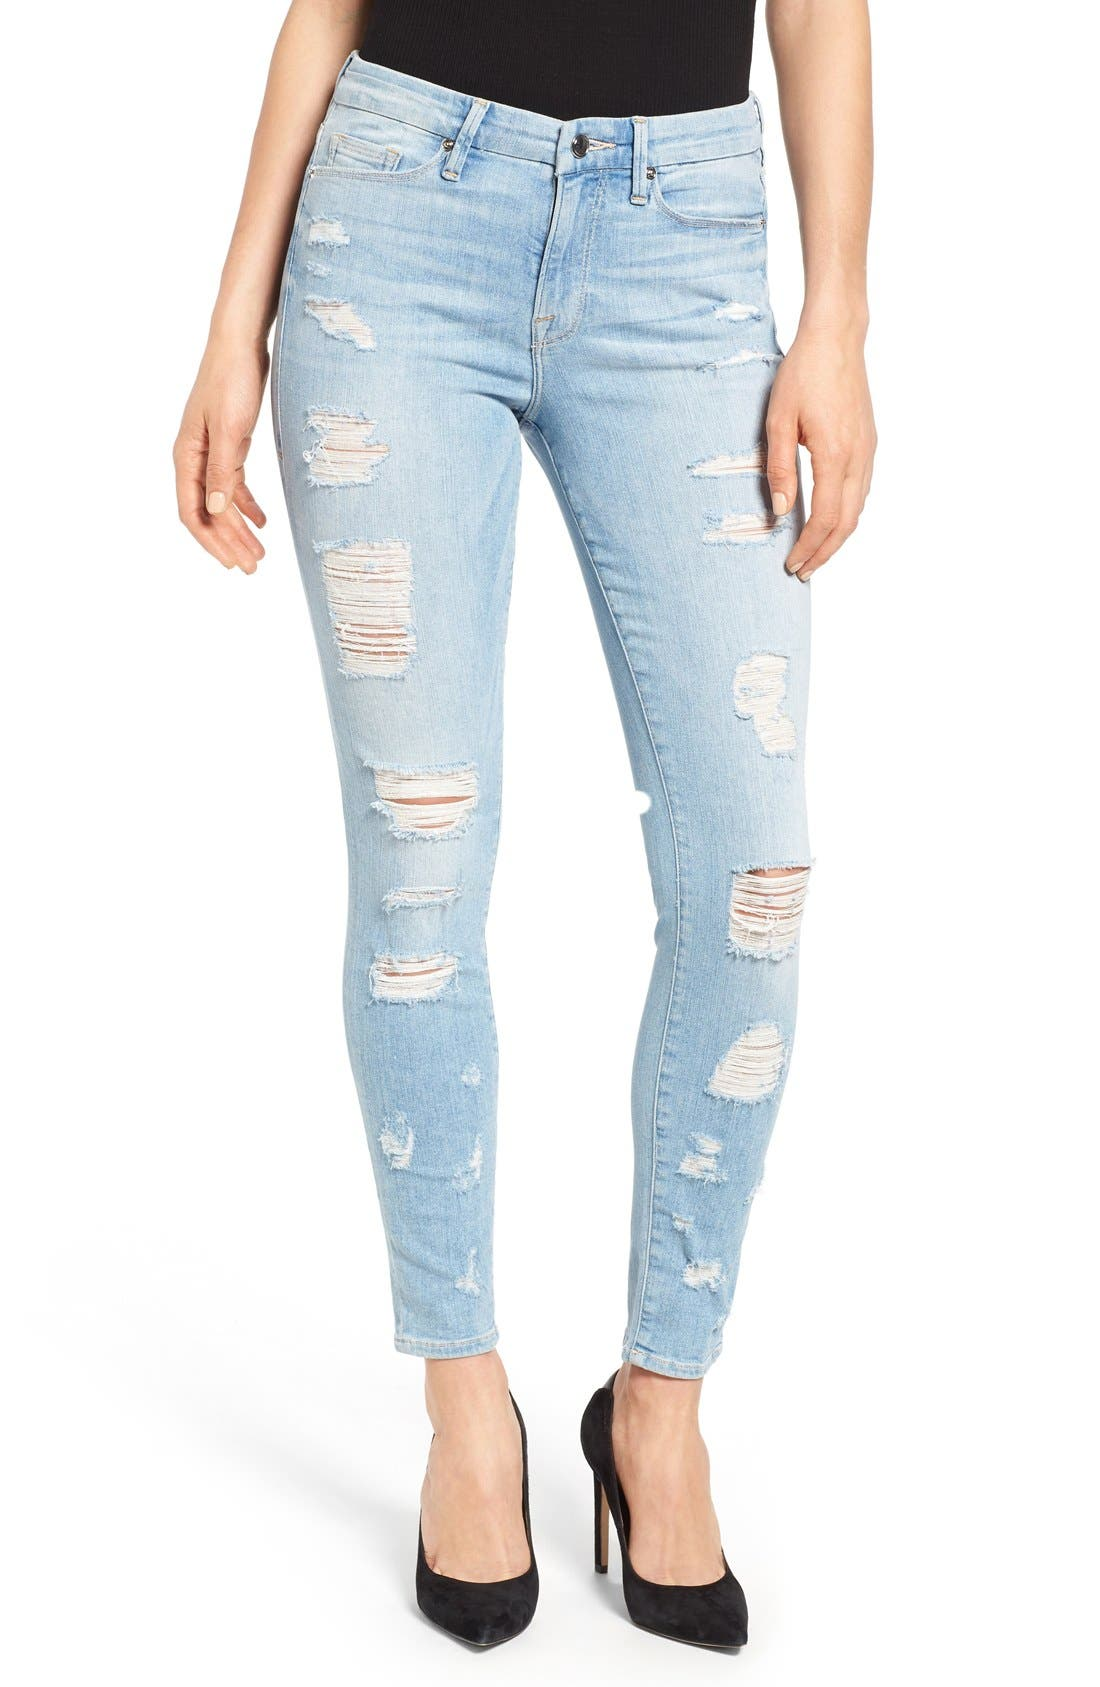 Alternate Image 1 Selected - Good American Good Legs High Rise Ripped Skinny Jeans (Blue 008)